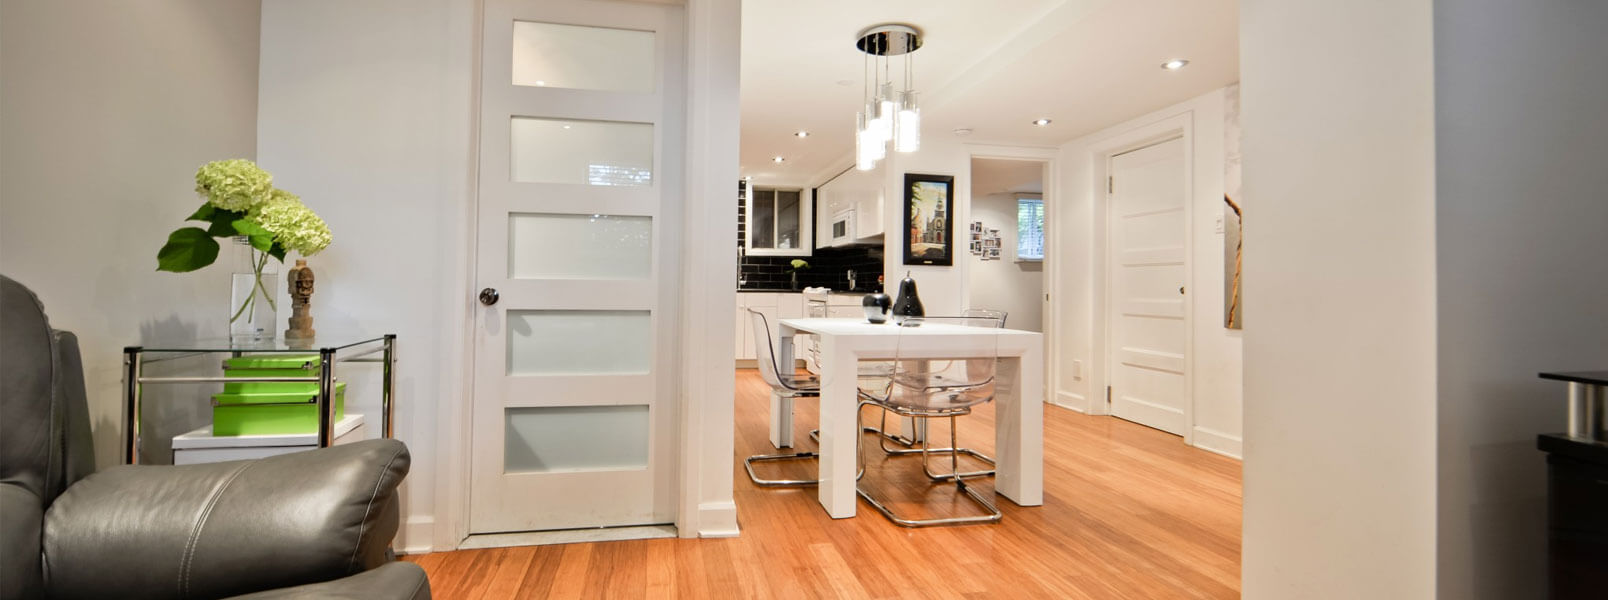 Converting Your Basement into a Rental Apartment | What to Consider